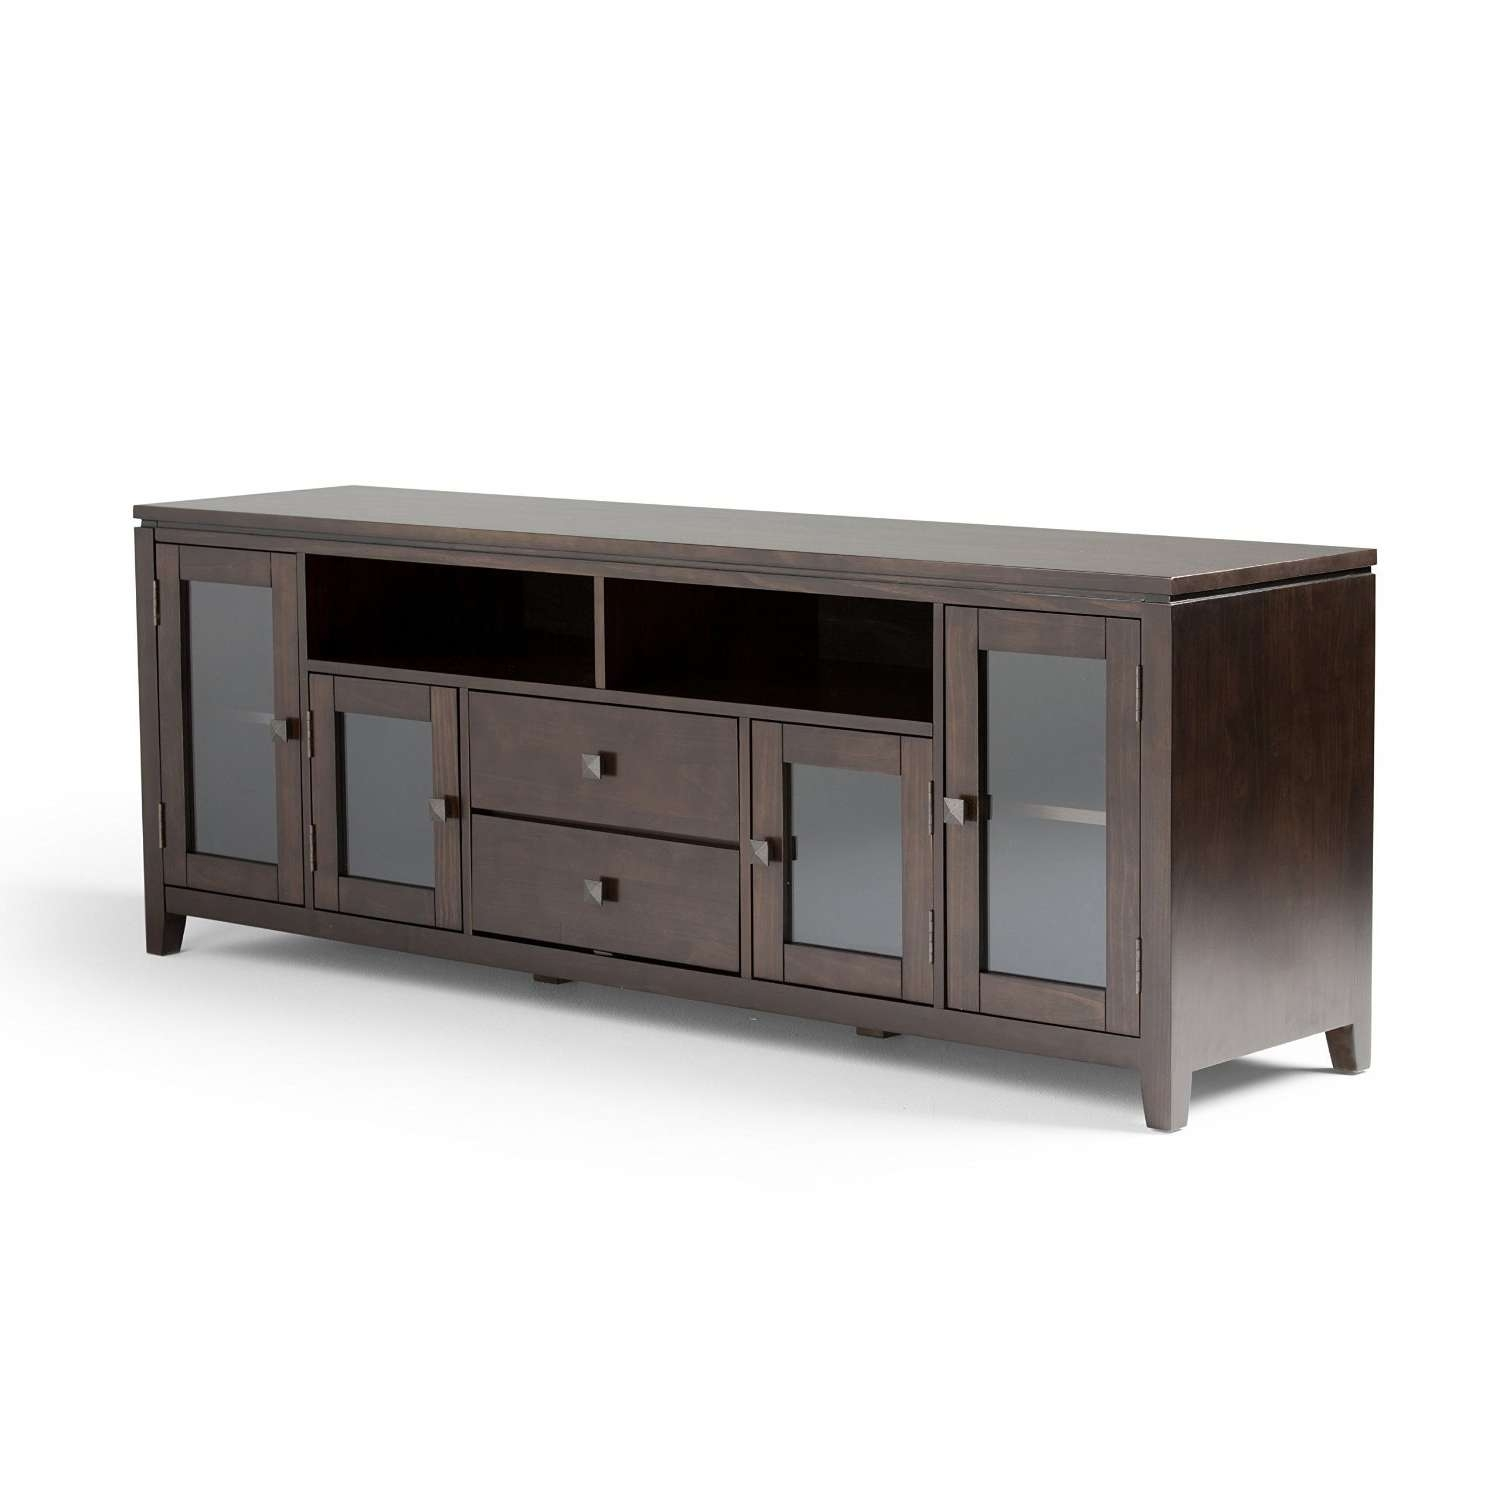 Large Tv Stand (View 9 of 20)